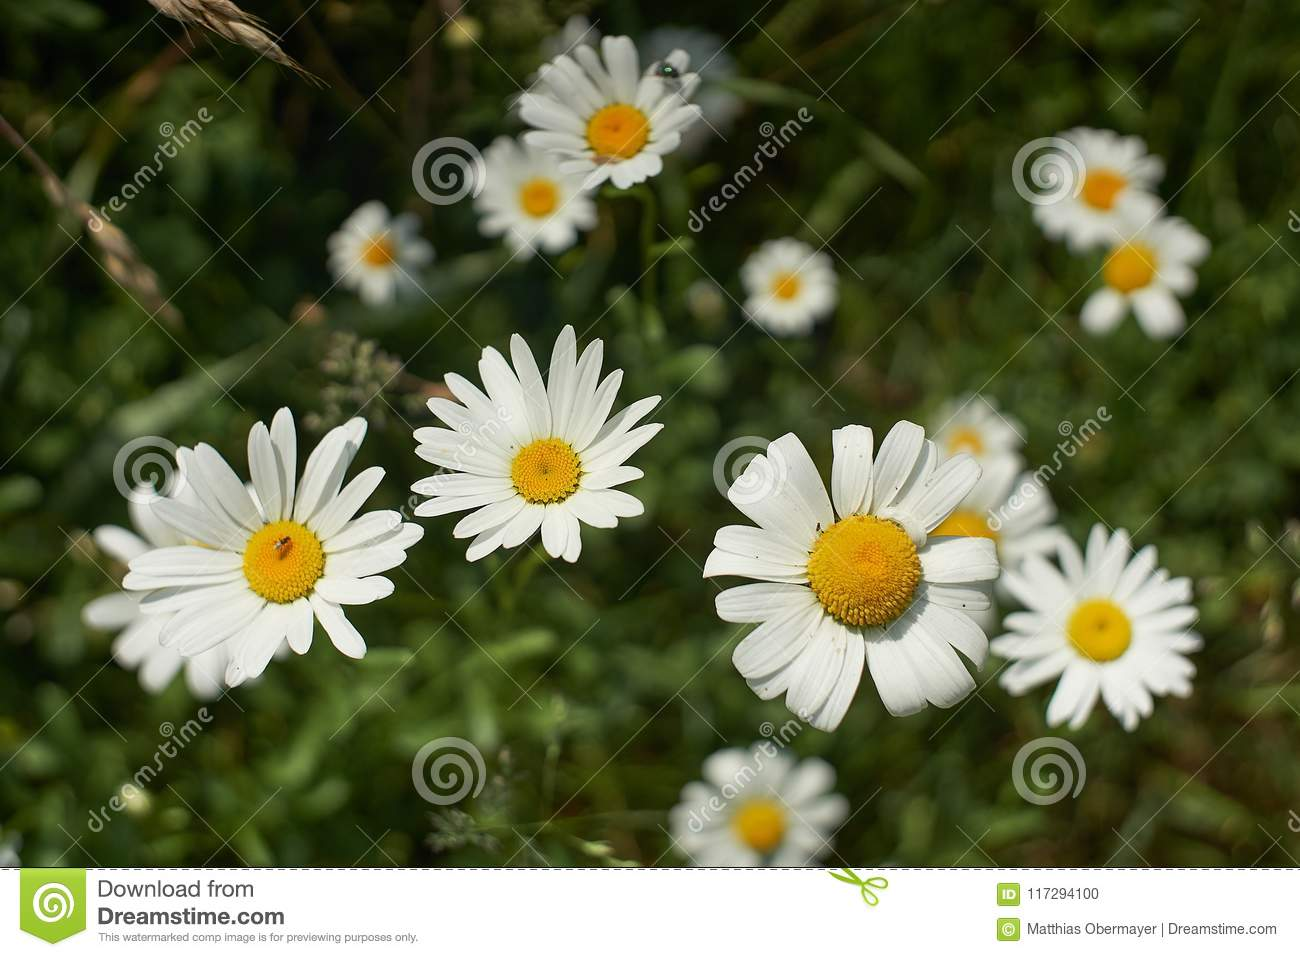 Beautiful floral nature background many fresh wild daisy flowers beautiful floral nature background many fresh wild daisy flowers growing in summer sunny meadow outside izmirmasajfo